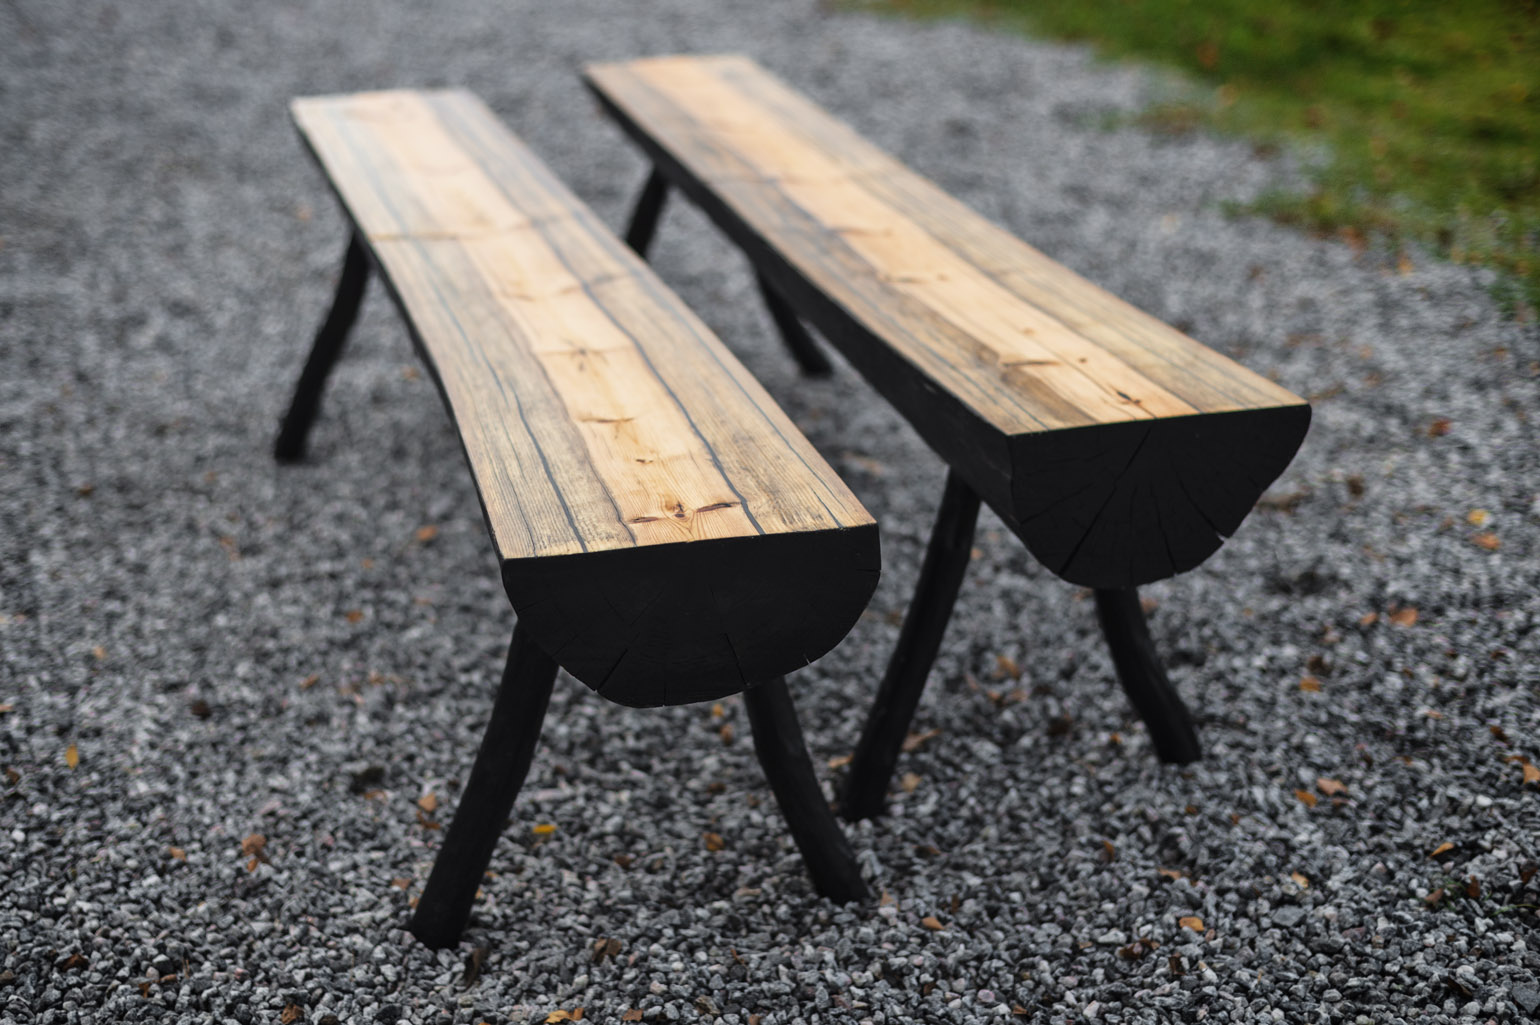 Two Benches #013